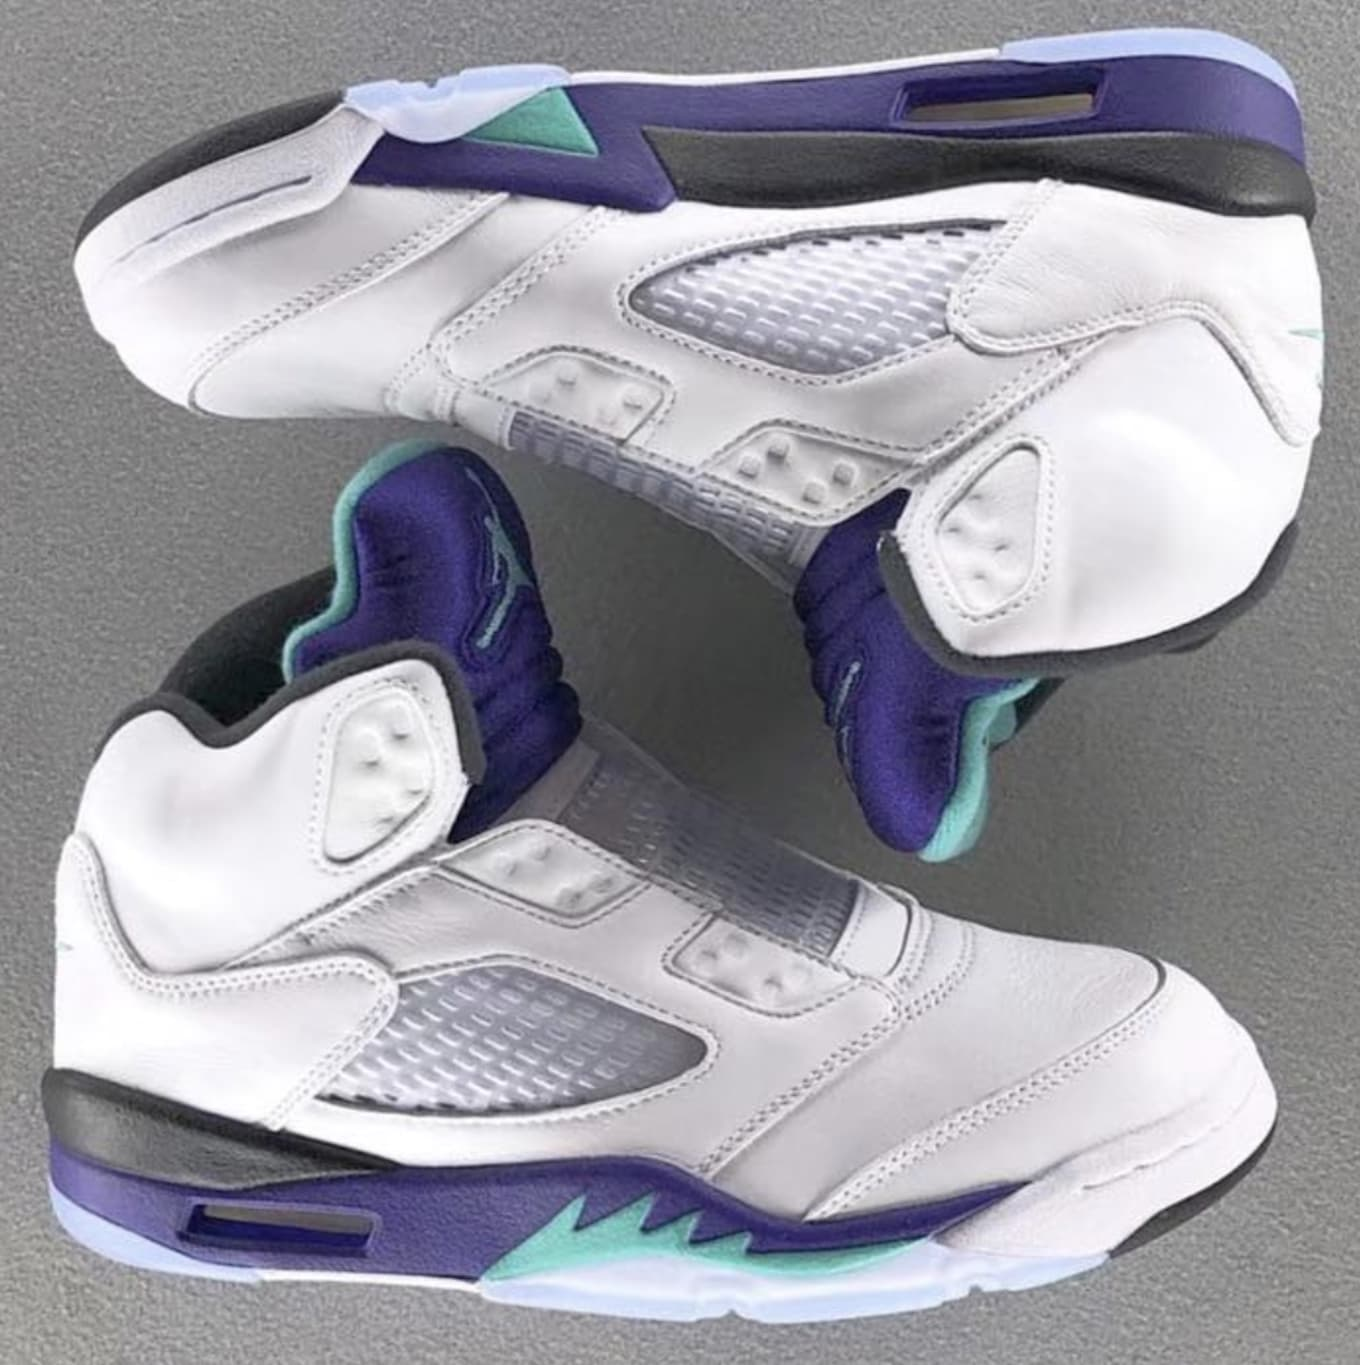 55eb262c85d3e5 Air Jordan V 5 Retro NRG  White Grape Ice Black New Emerald  2018 ...